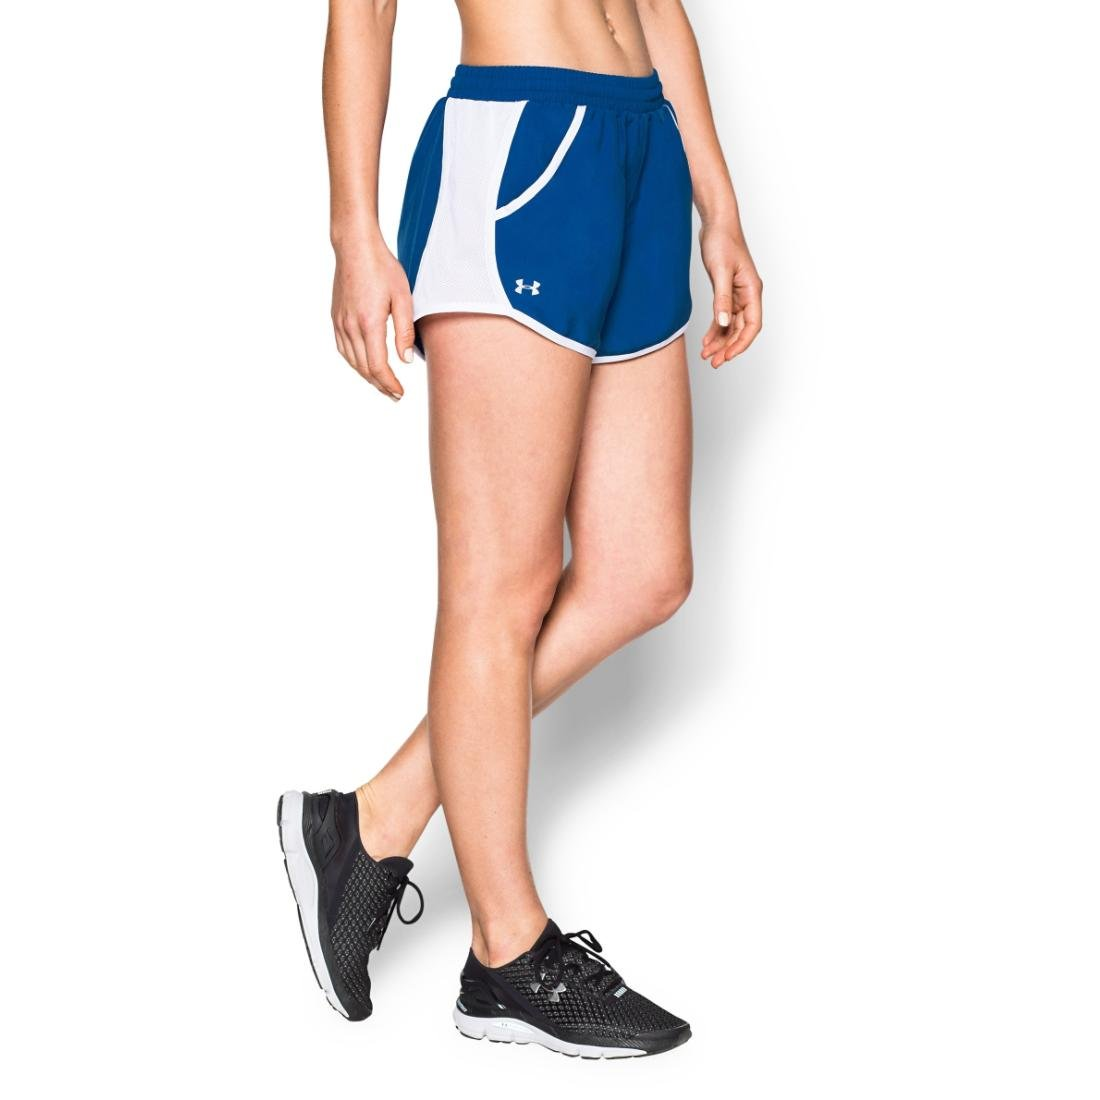 Under Armour Women's Fly-By Run Short Under Armour Apparel 1271543